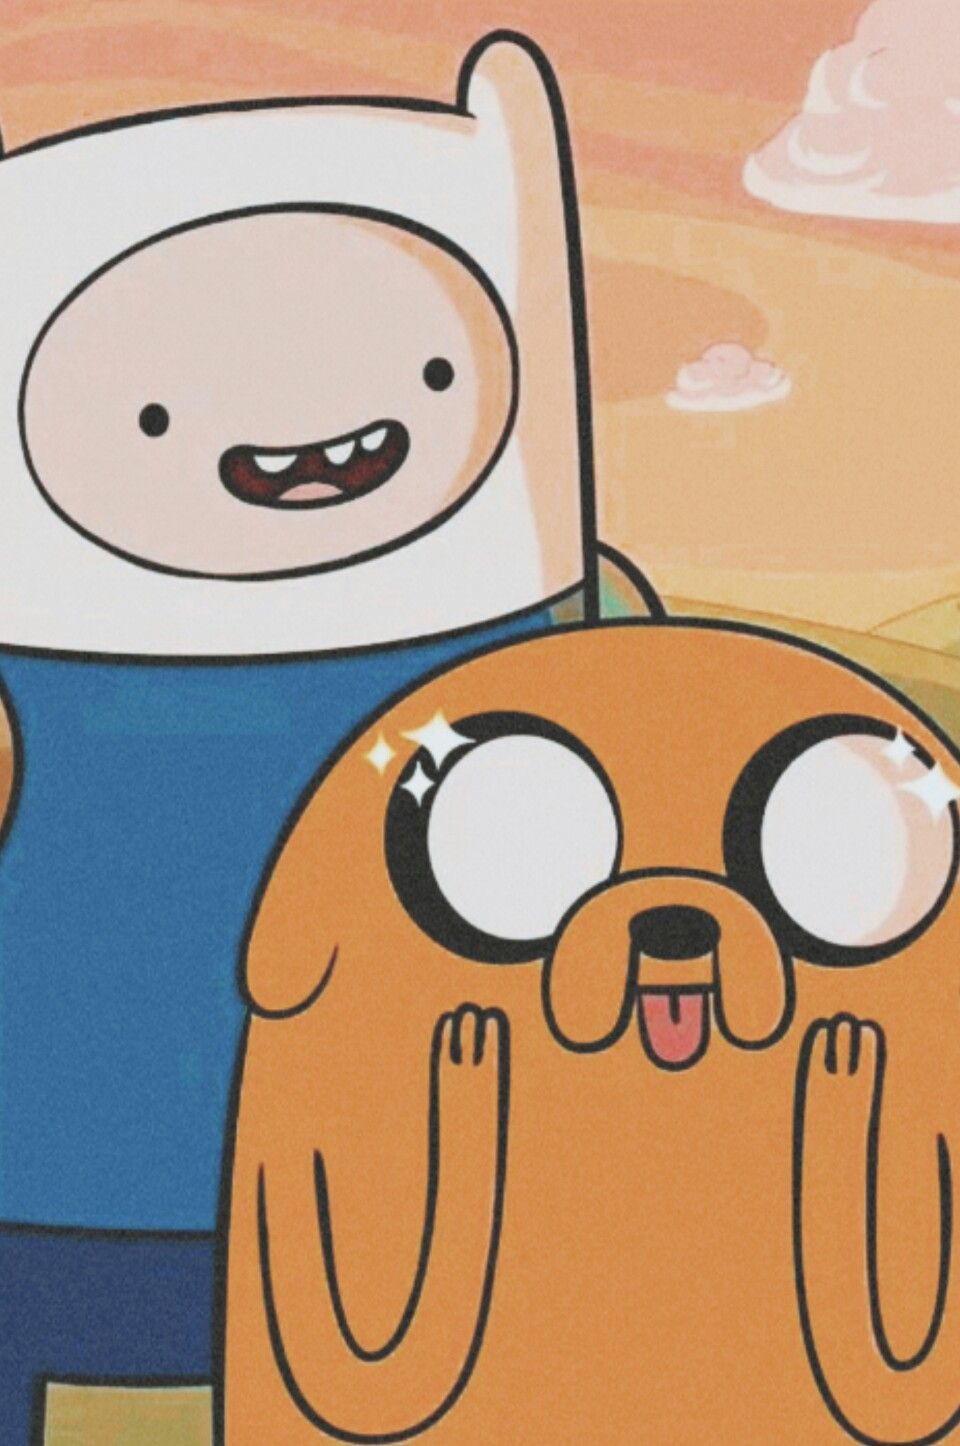 Startups Adventure Finn And Jack Adventure Time Prismo Adventure Time Adventure Tim In 2020 Adventure Time Cartoon Adventure Time Wallpaper Adventure Time Drawings